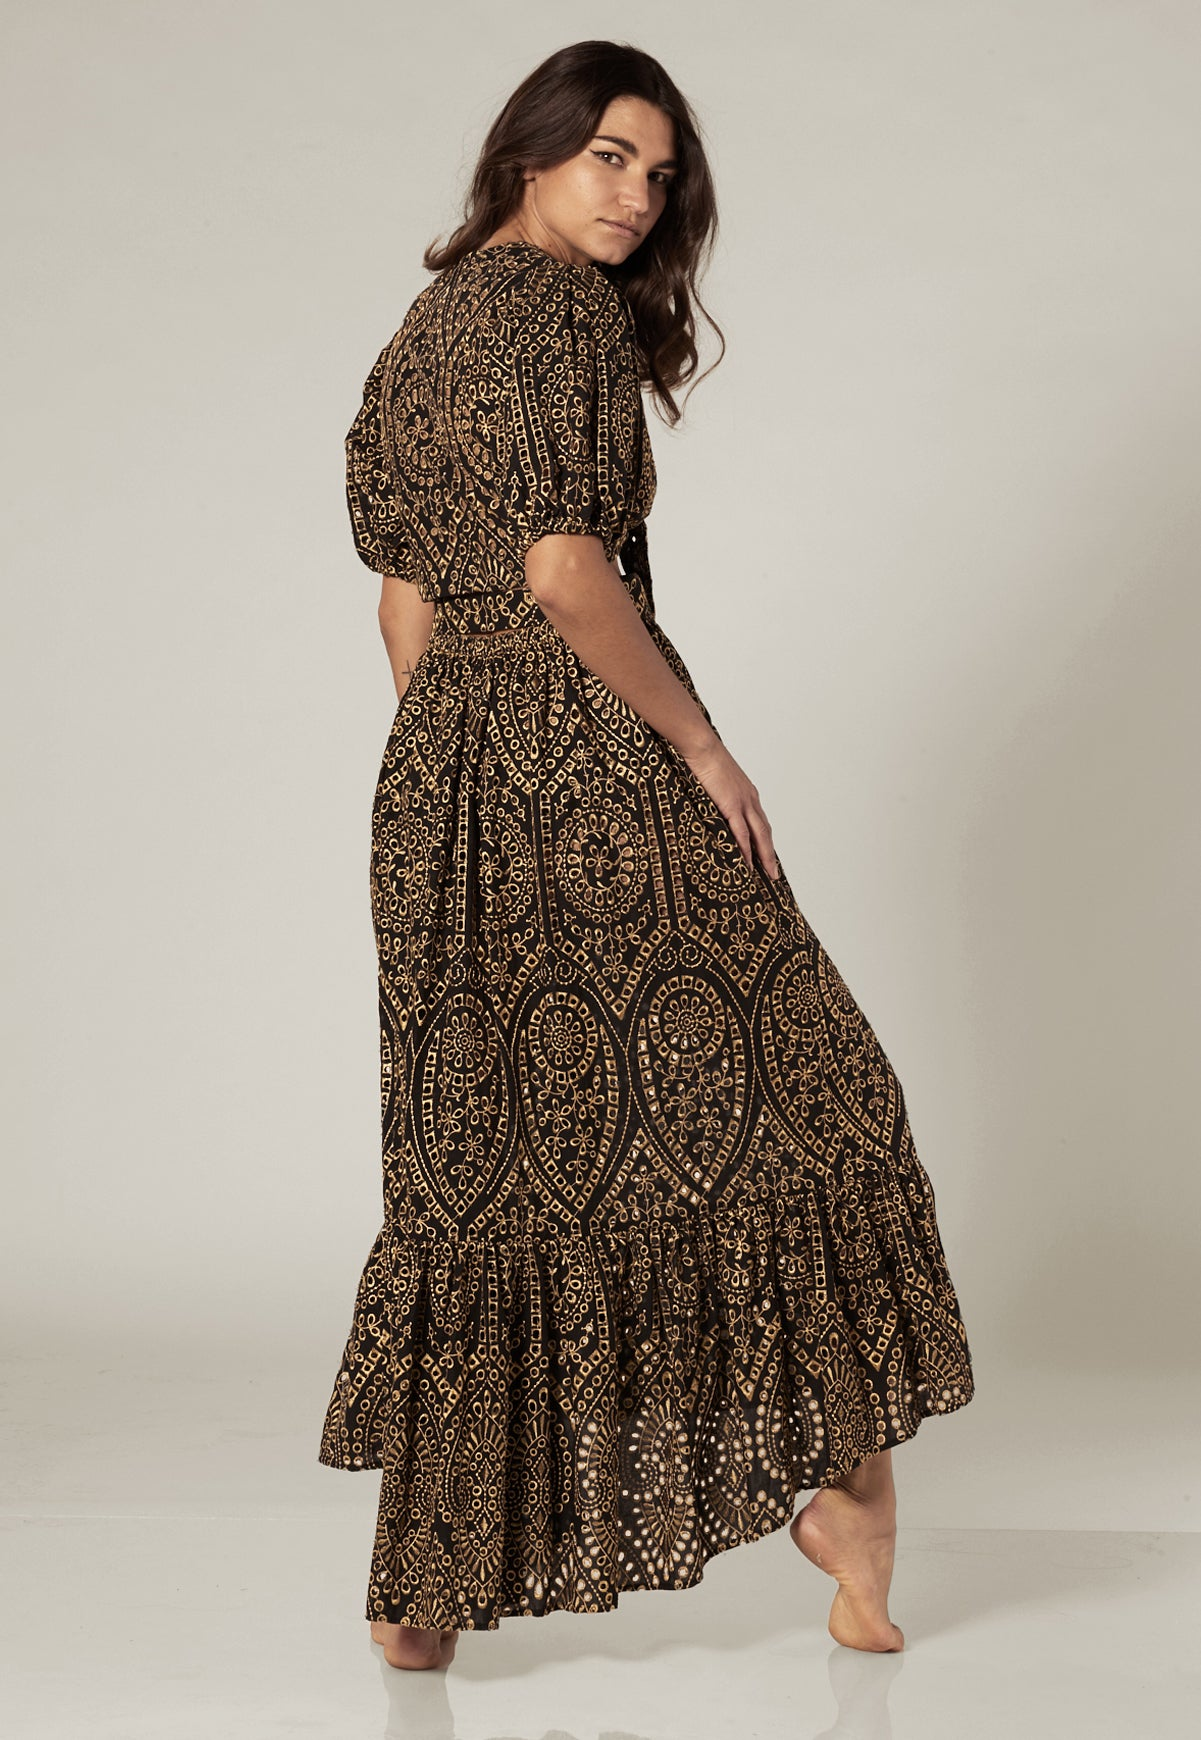 NICOLE BLACK/GOLD EYELET SKIRT